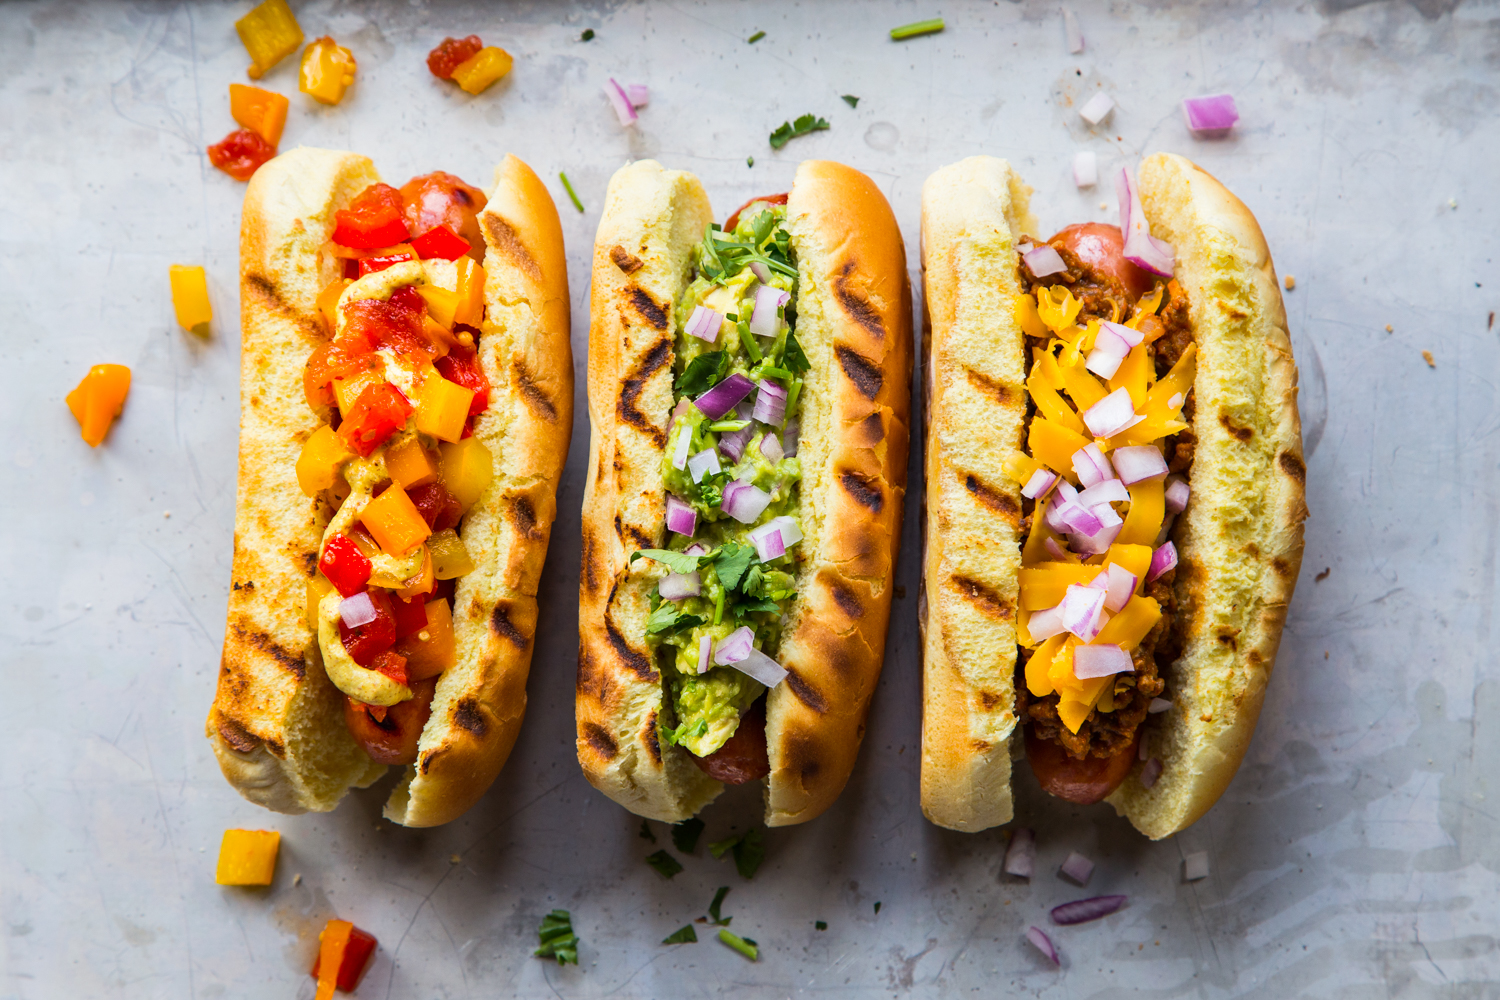 Dachshunds, Dog Wagons and Other Important Elements of Hot Dog History. Sausage is one of the oldest forms of processed food, having been mentioned .